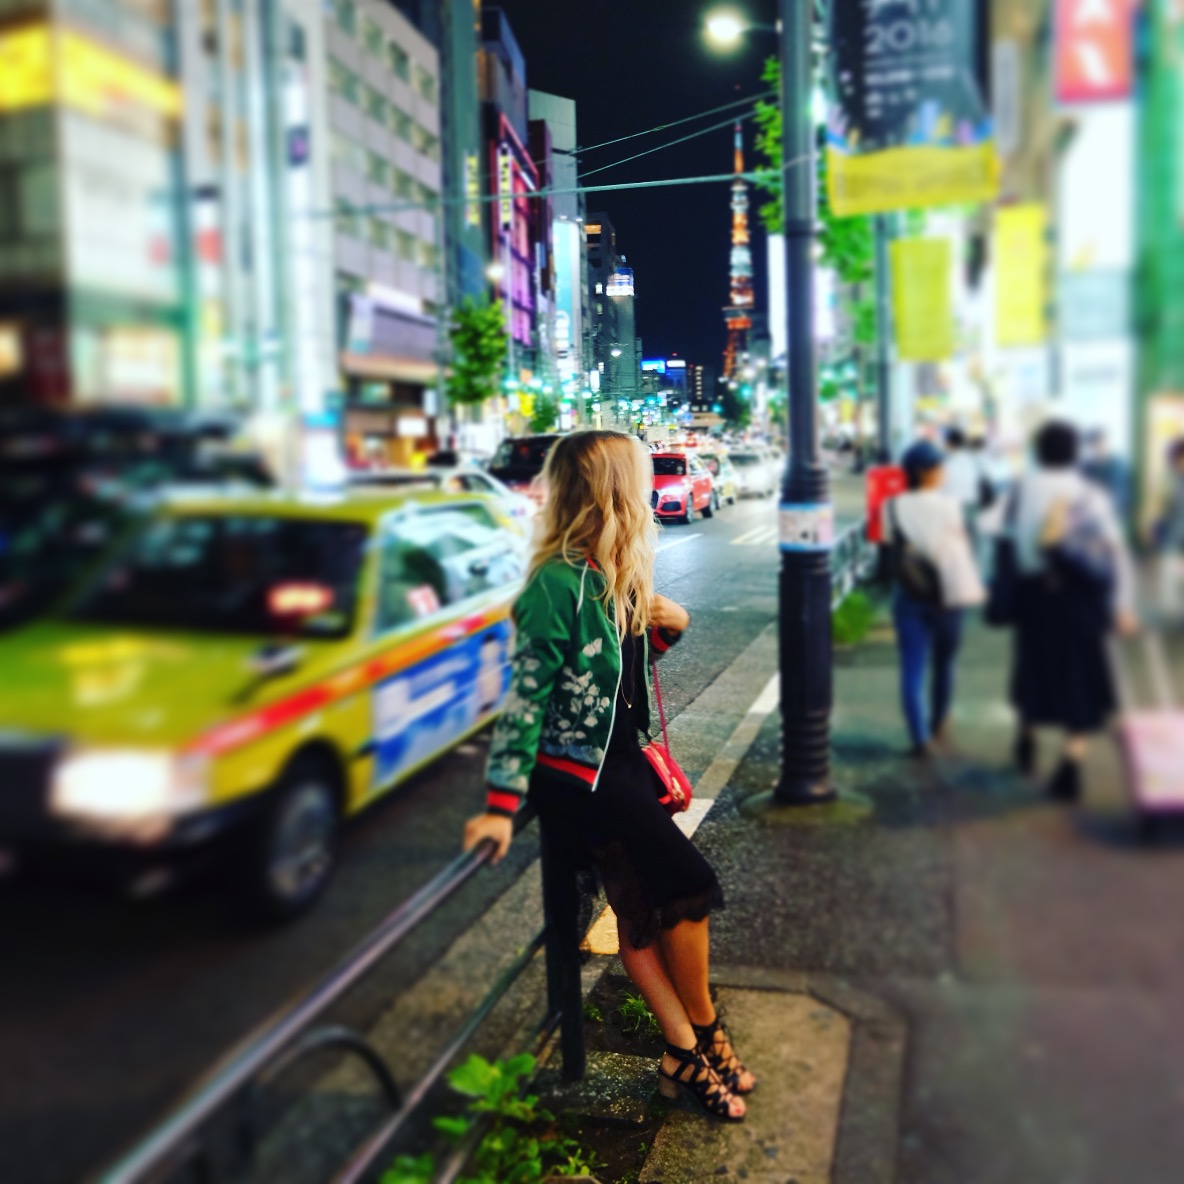 The neon lights of Tokyo at night